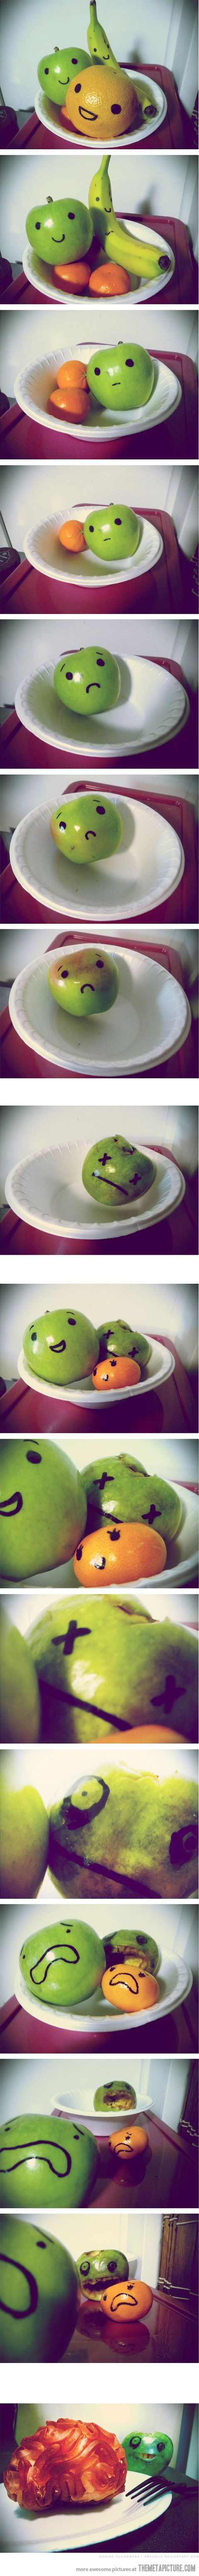 A Fruit Story-At first I thought it was sad, but then it became...less sad...for the original apple...sorta...